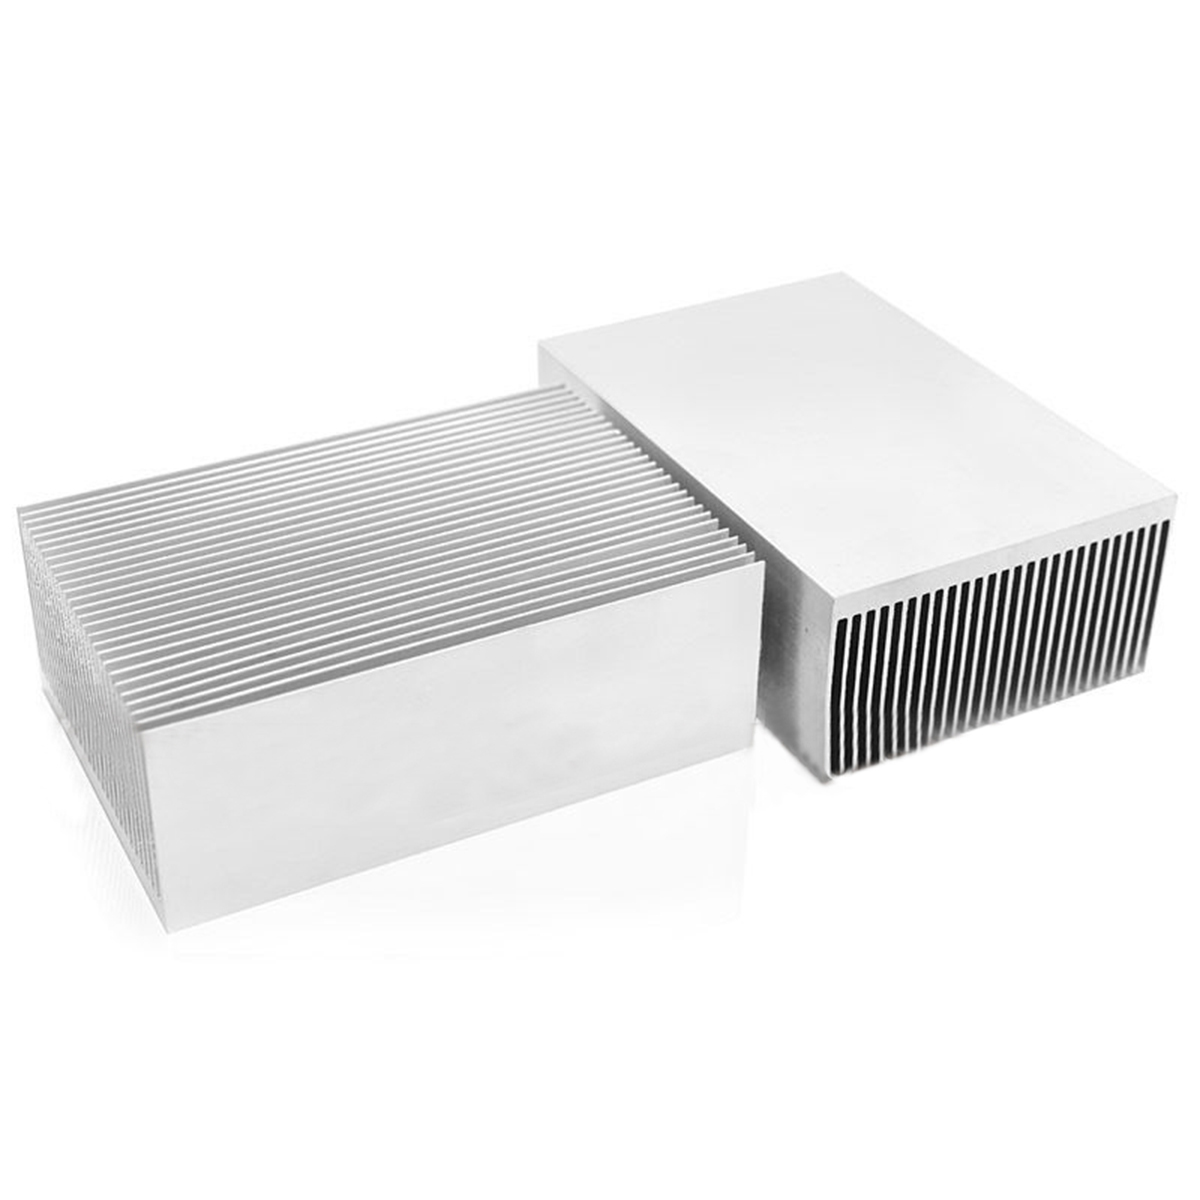 DWZ 1pc Large Big Aluminum Heatsink Heat Sink Radiator for Led High Power Amplifier synthetic graphite cooling film paste 300mm 300mm 0 025mm high thermal conductivity heat sink flat cpu phone led memory router